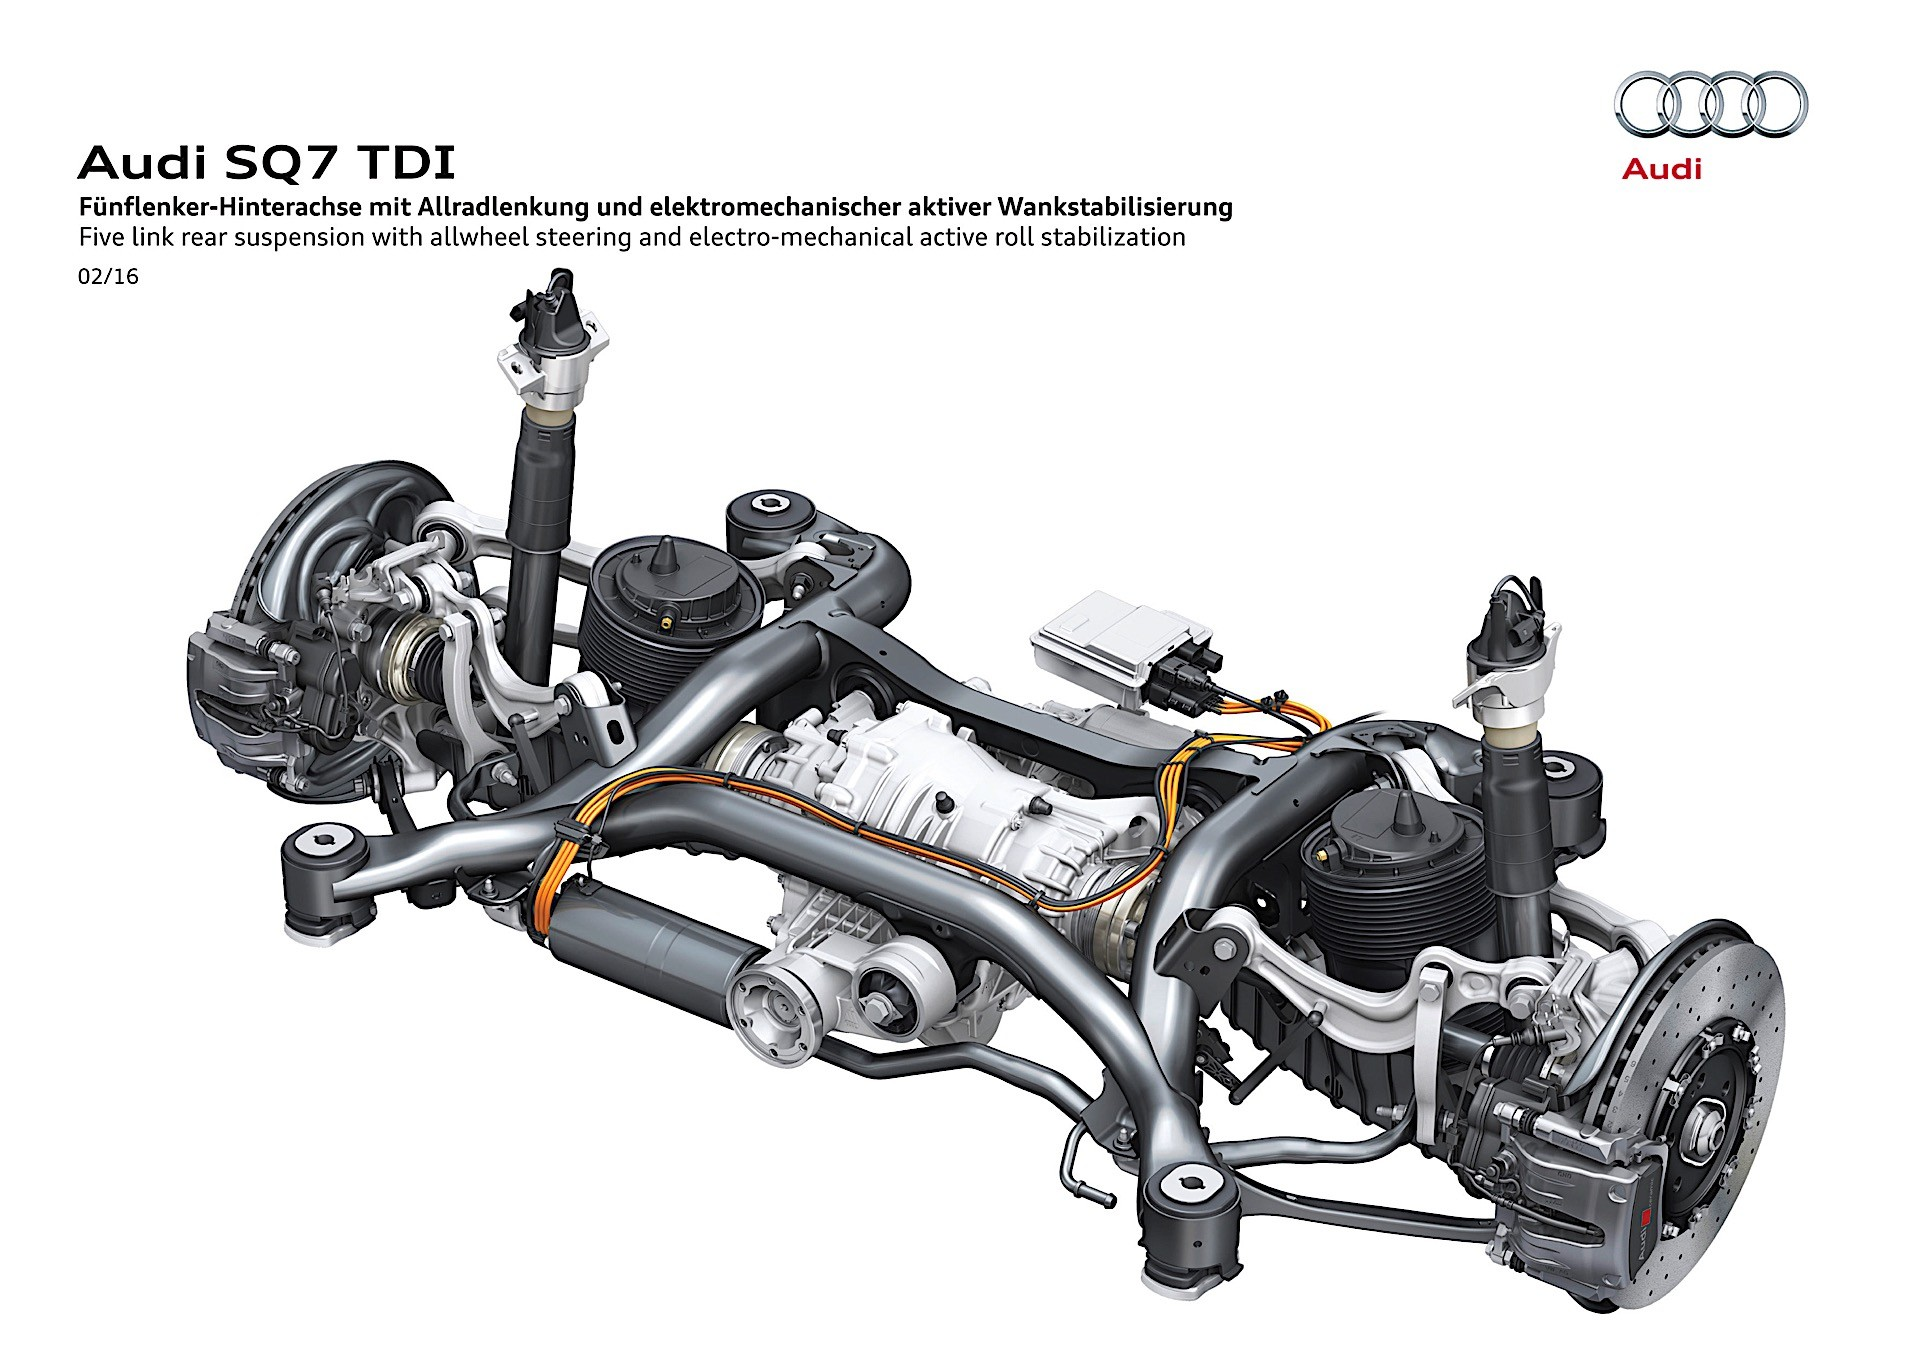 2013 10 01 archive together with Otto Diesel And Dual Cycle  parison in addition Audi Sq7 Tdi Be es The Most Powerful Diesel Suv In The World 435 Hp 105226 moreover Typical Questions For Piping Engineers Knowledge Testing With Answers additionally Define Heat Engine. on diesel engine efficiency